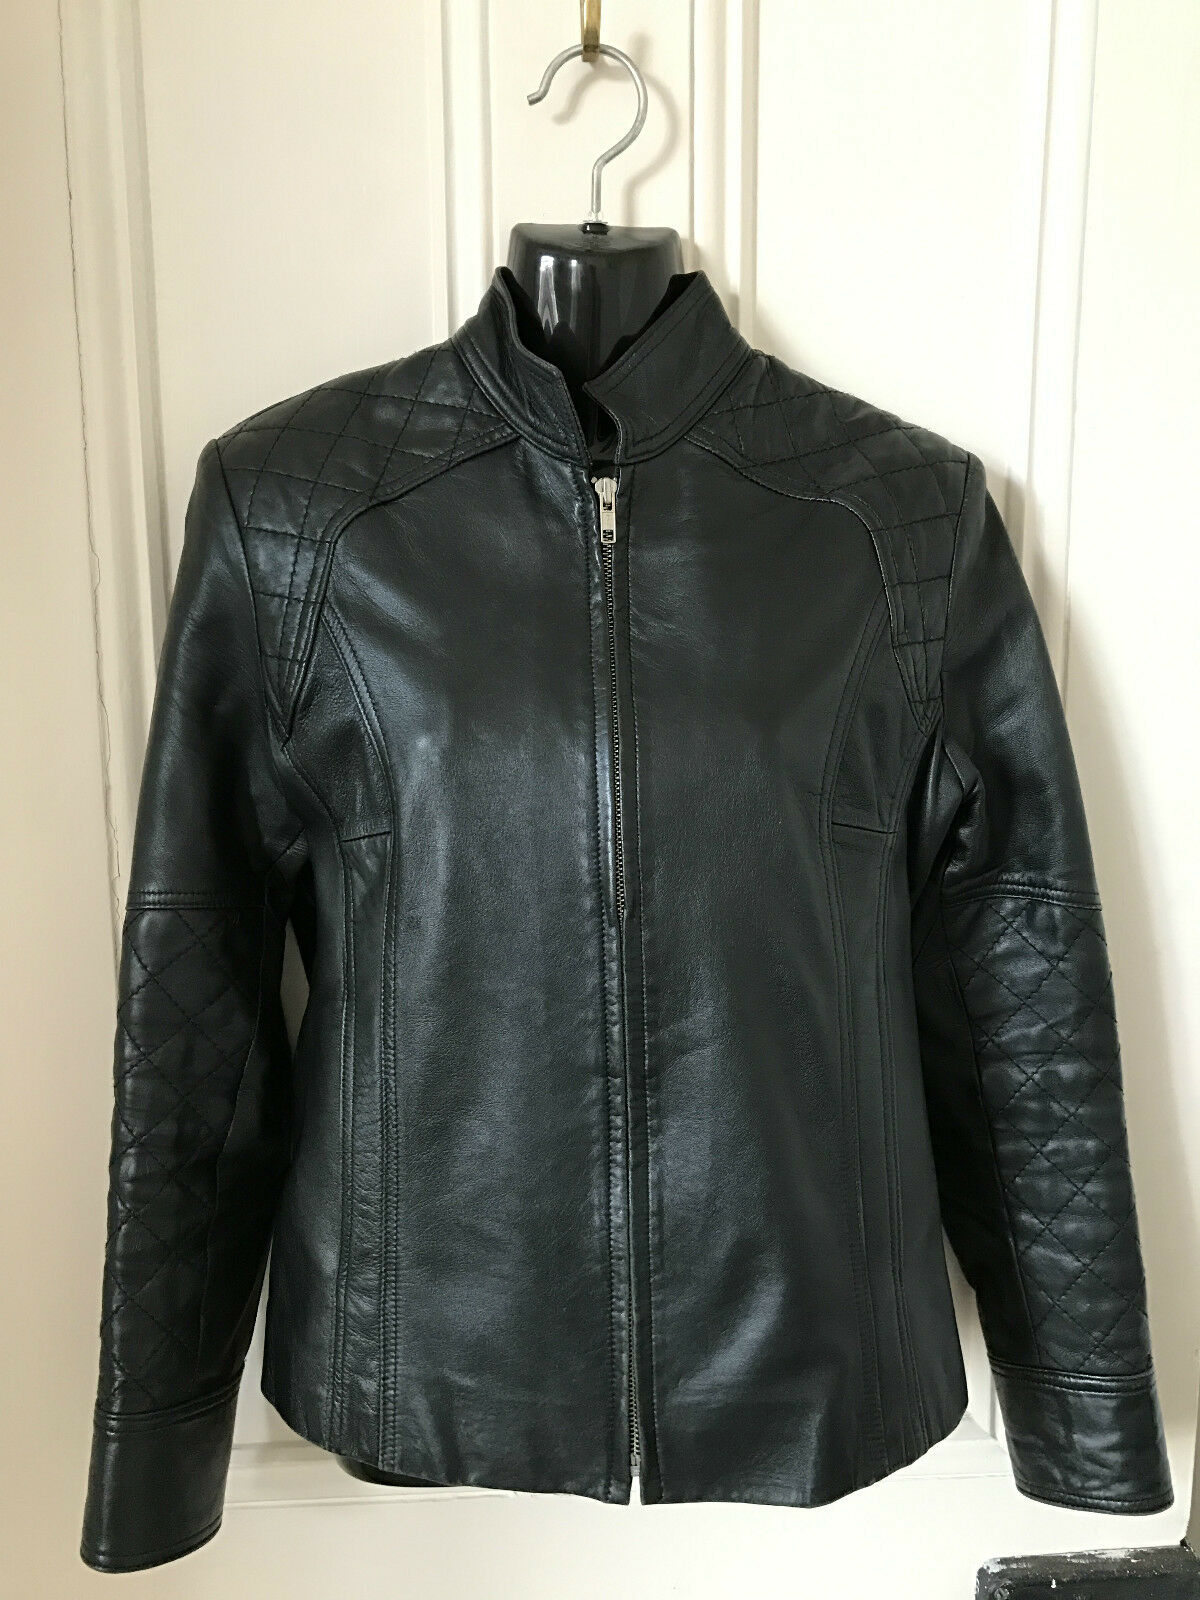 Australian made leather jackets